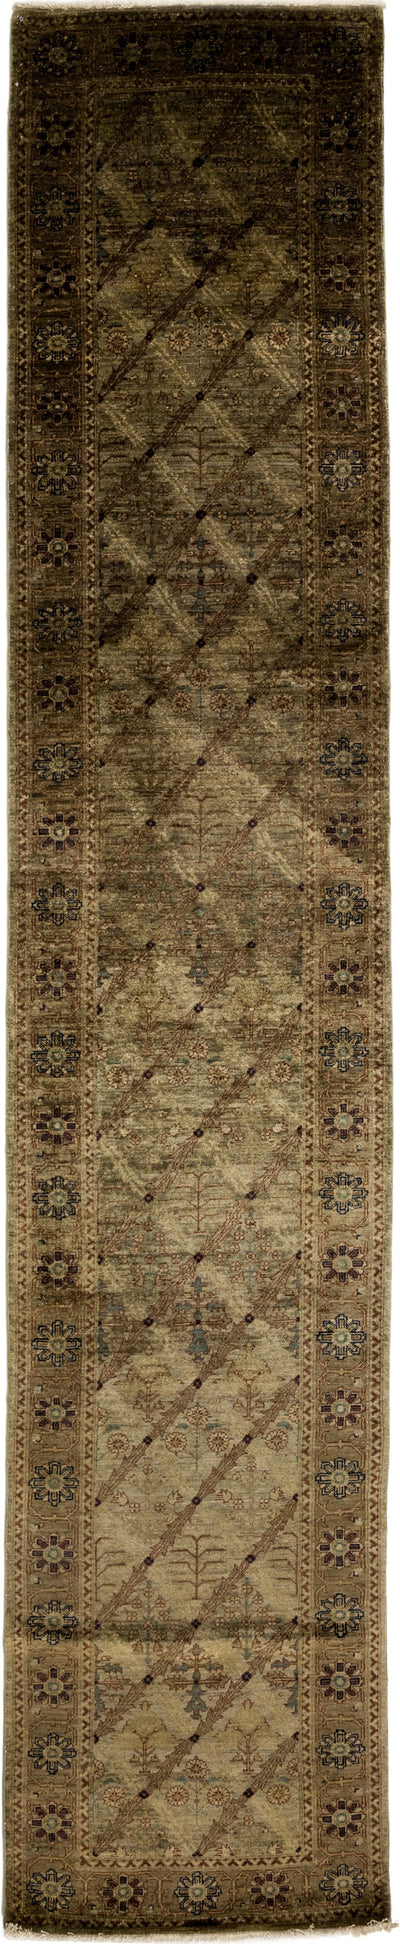 "Oushak, Brown Wool Runner - 3' 0"" x 15' 4"""